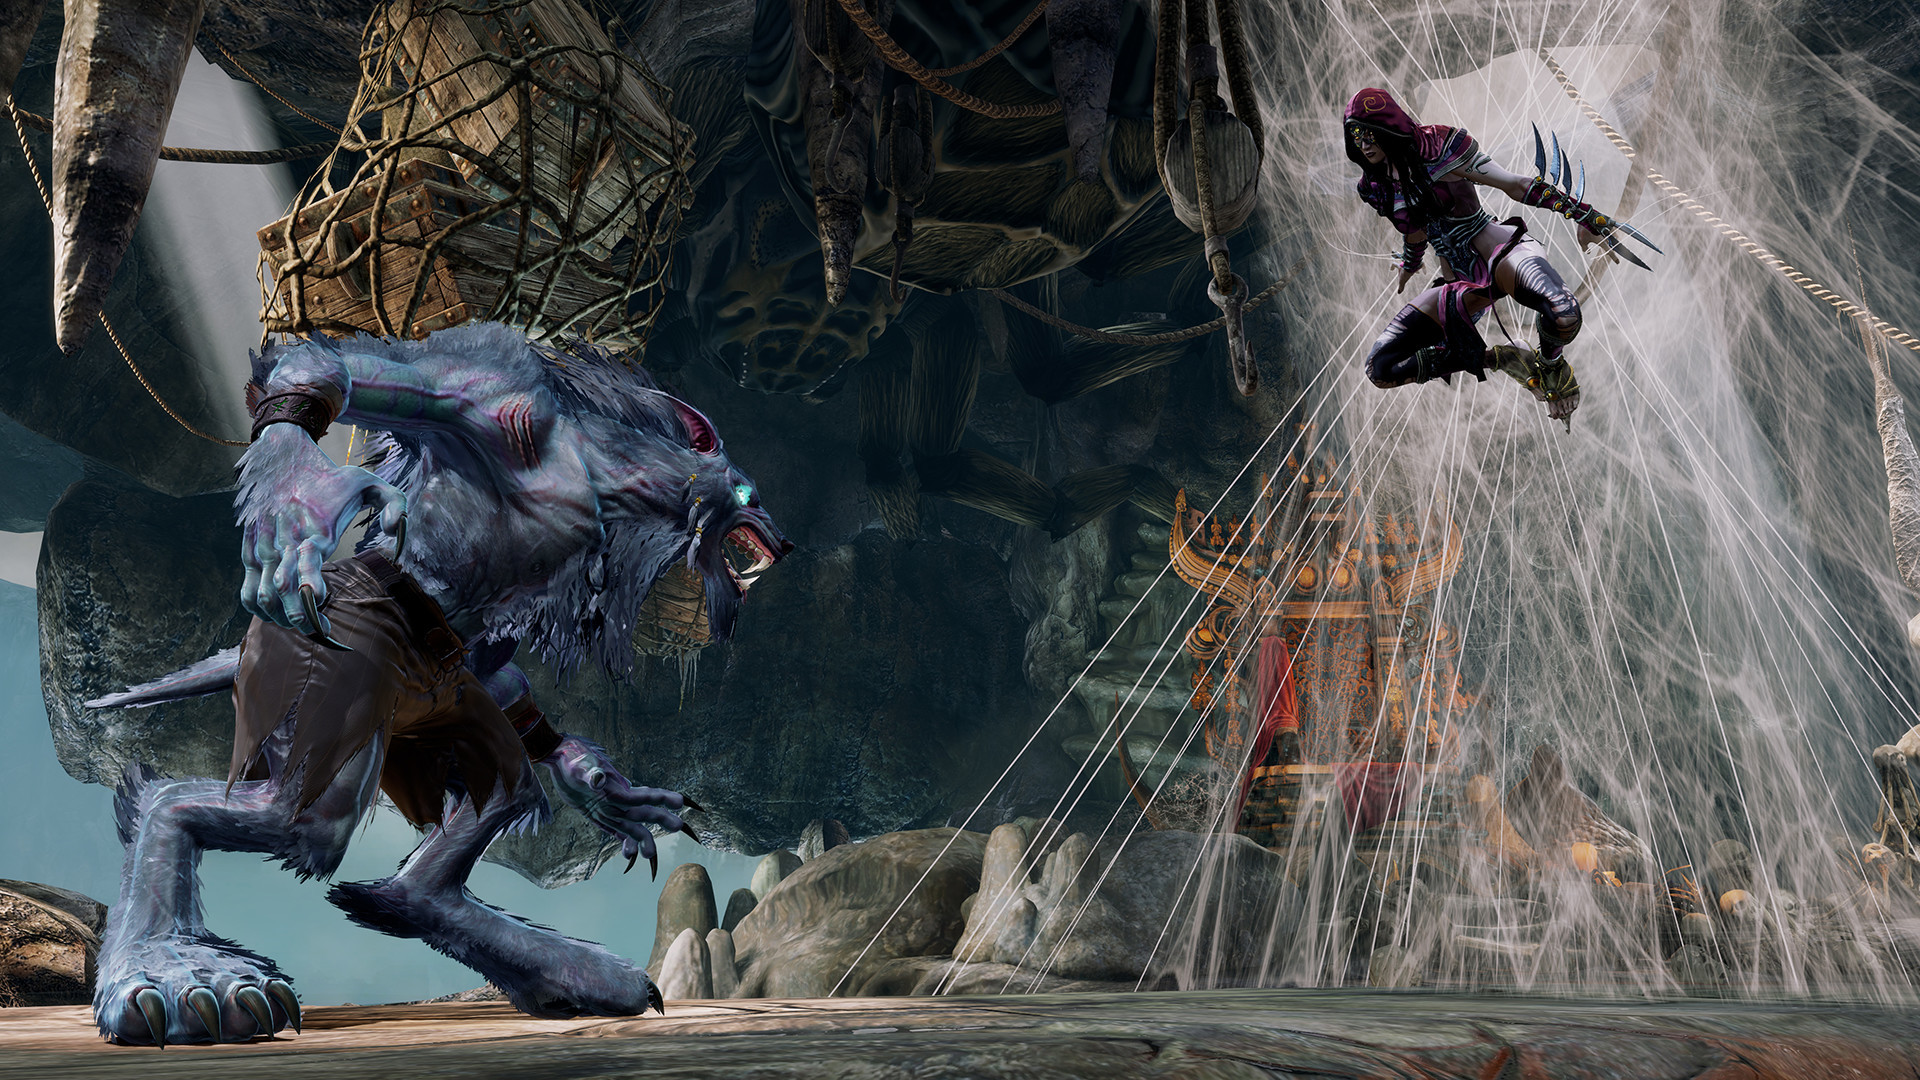 Killer Instinct is now available on Steam, supports cross-play with Xbox